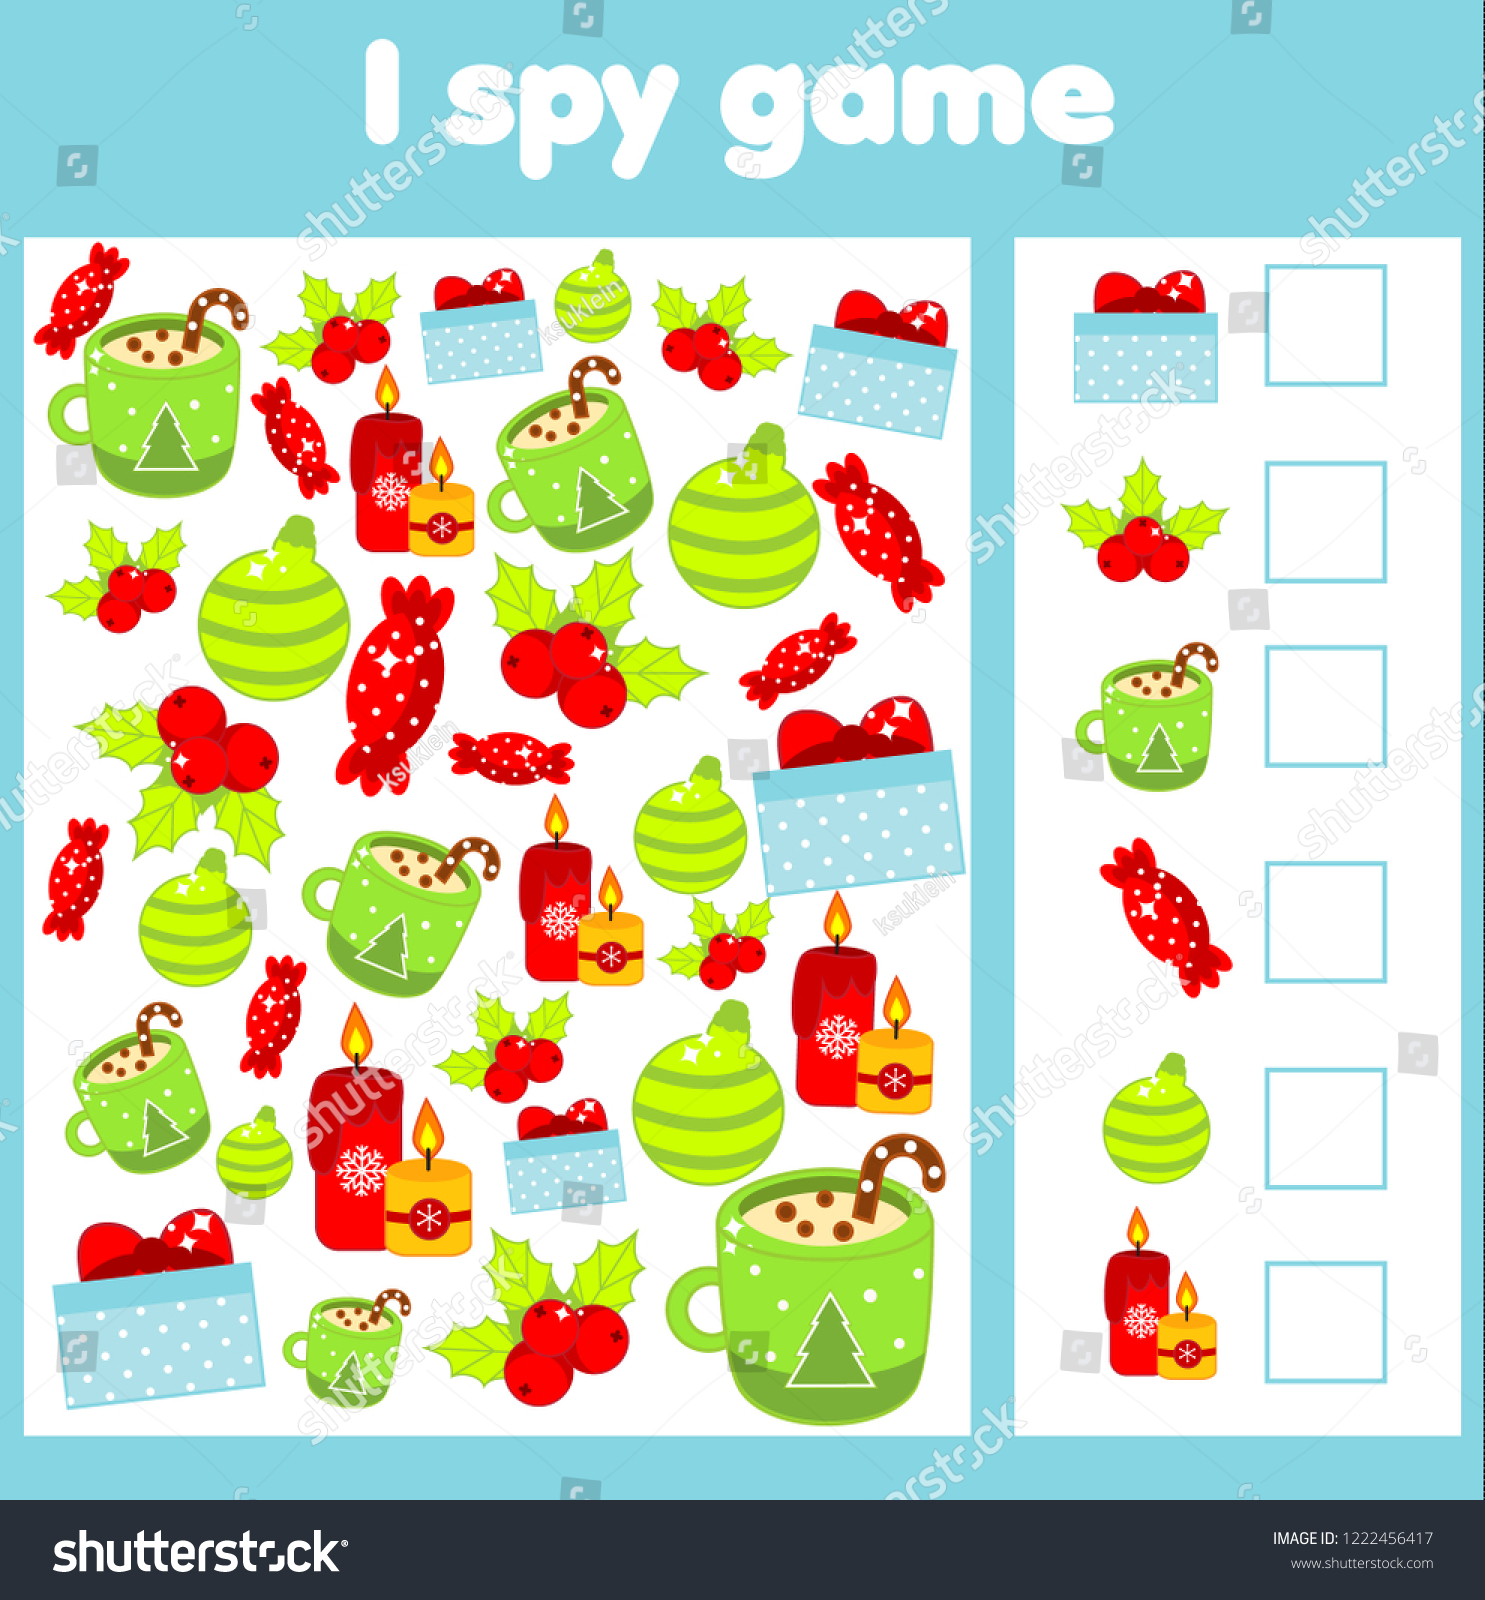 spy game toddlers find count objects stock vector royalty free 1222456417 https www shutterstock com image vector spy game toddlers find count objects 1222456417